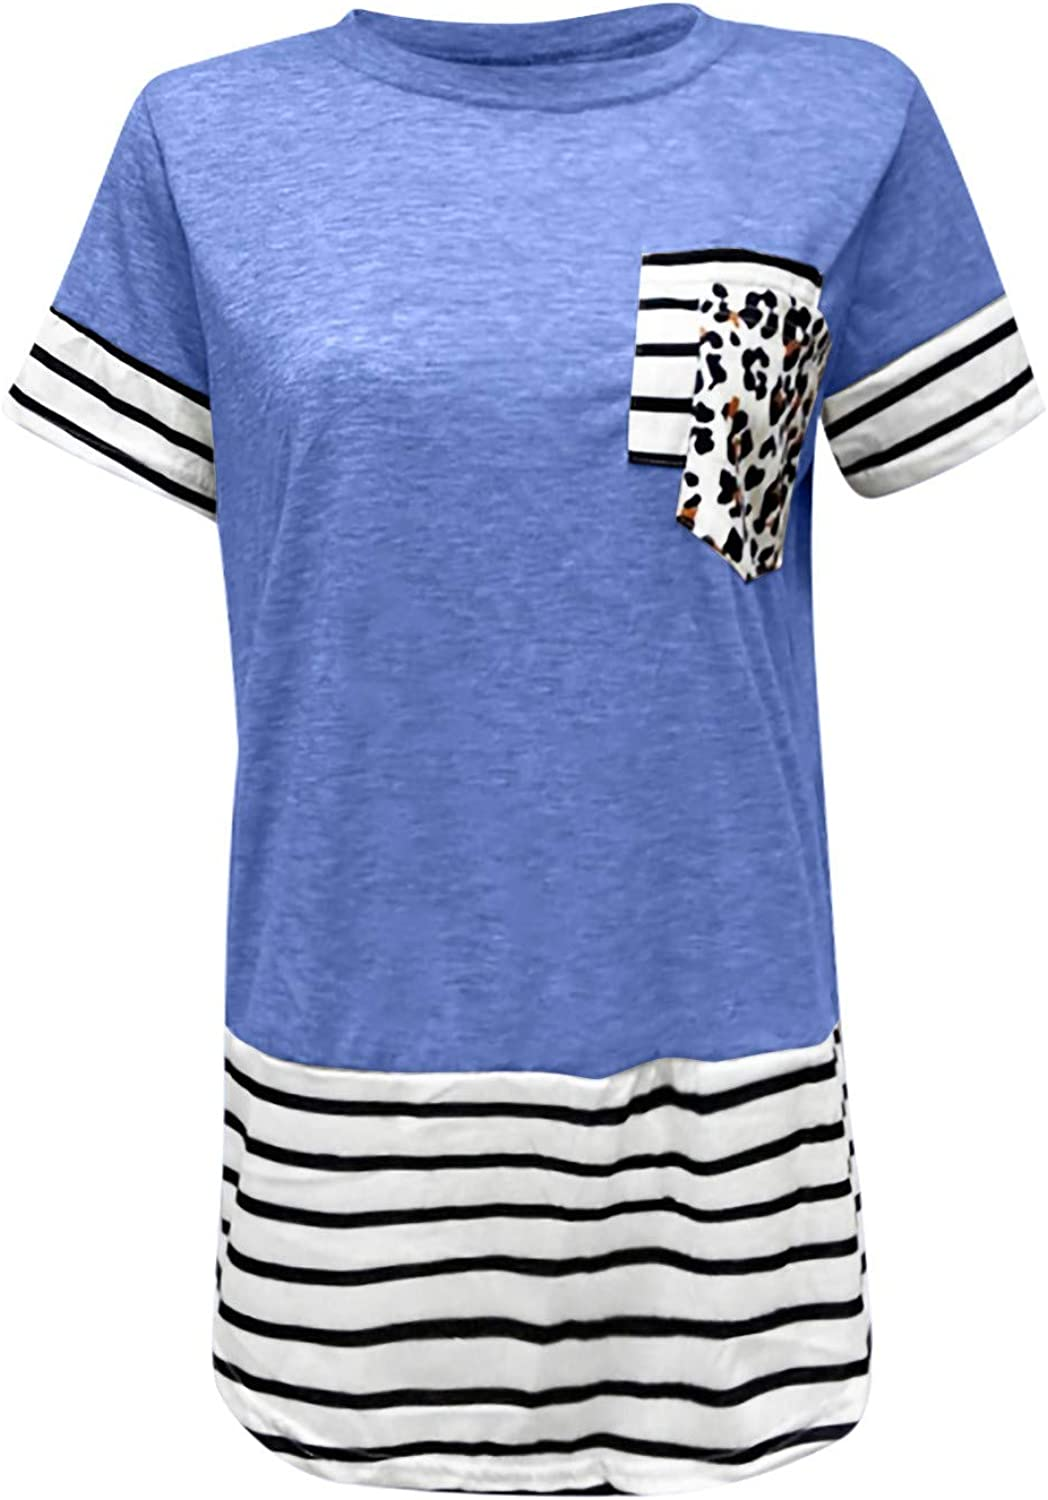 Aukbays T-Shirts for Women Triple Color Block Stripe Short Sleeve with Pocket Tops O Neck Casual Summer Tees Shirt